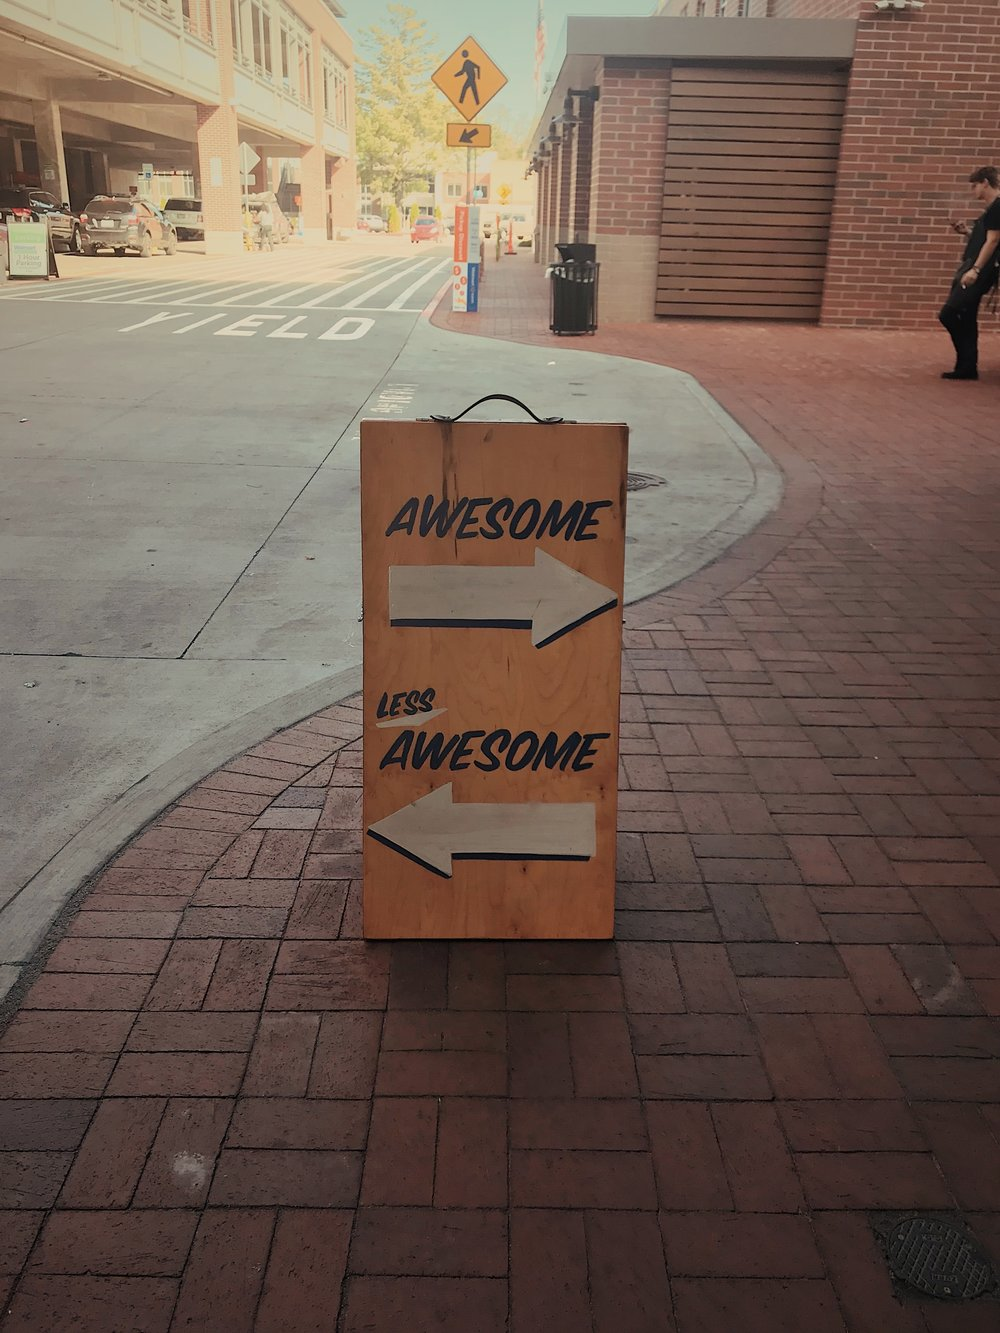 The road to being awesome is paved with surveys ( image source )